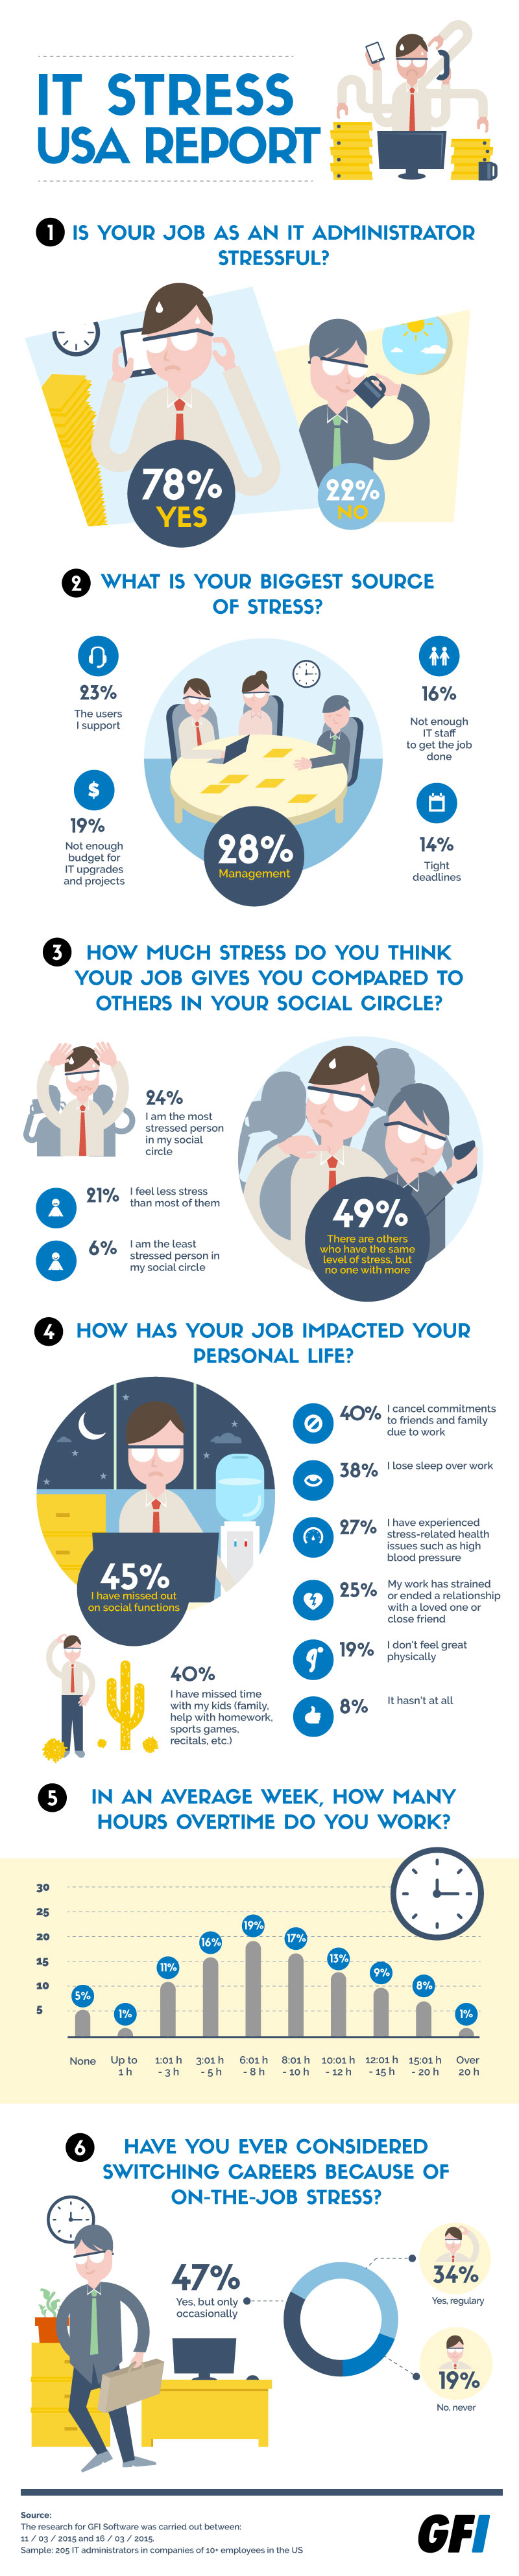 GFI 2015 IT Stress USA Survey Infographic 2015